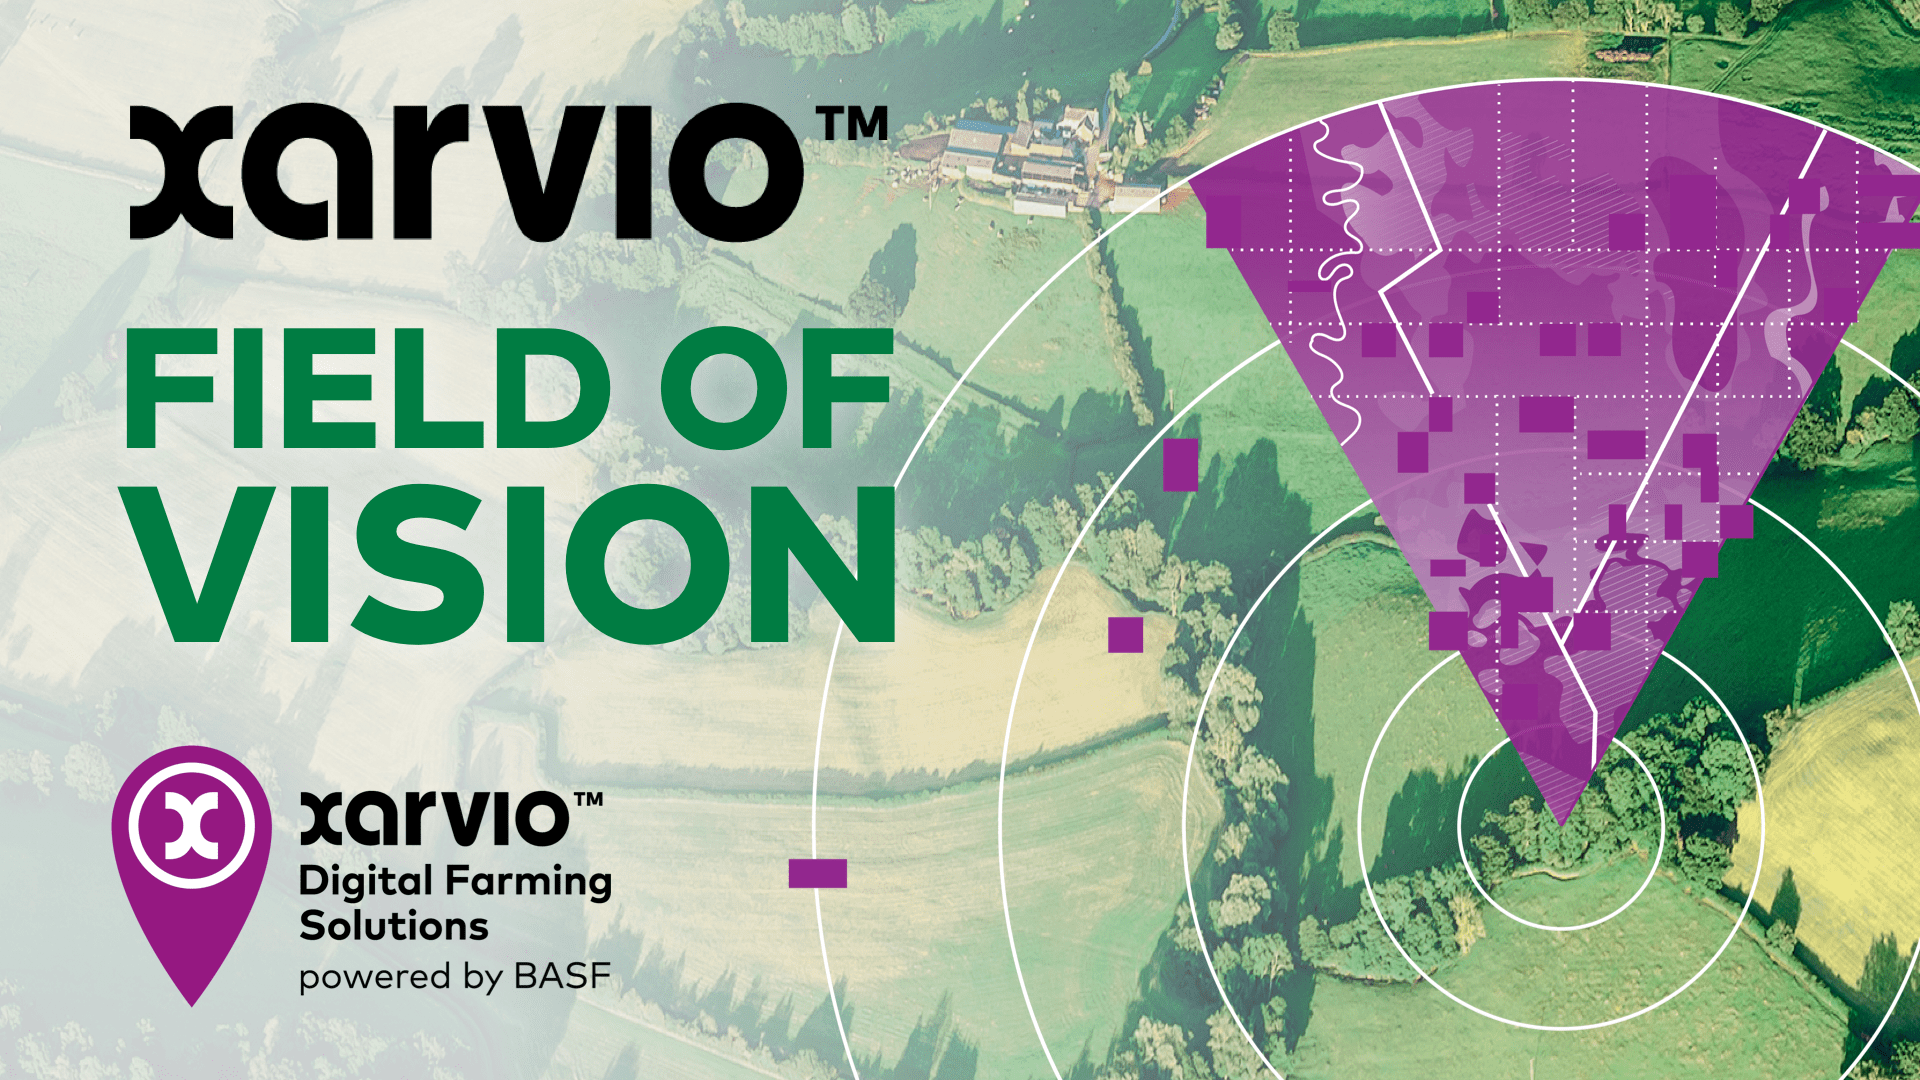 xarvio Field of Vision